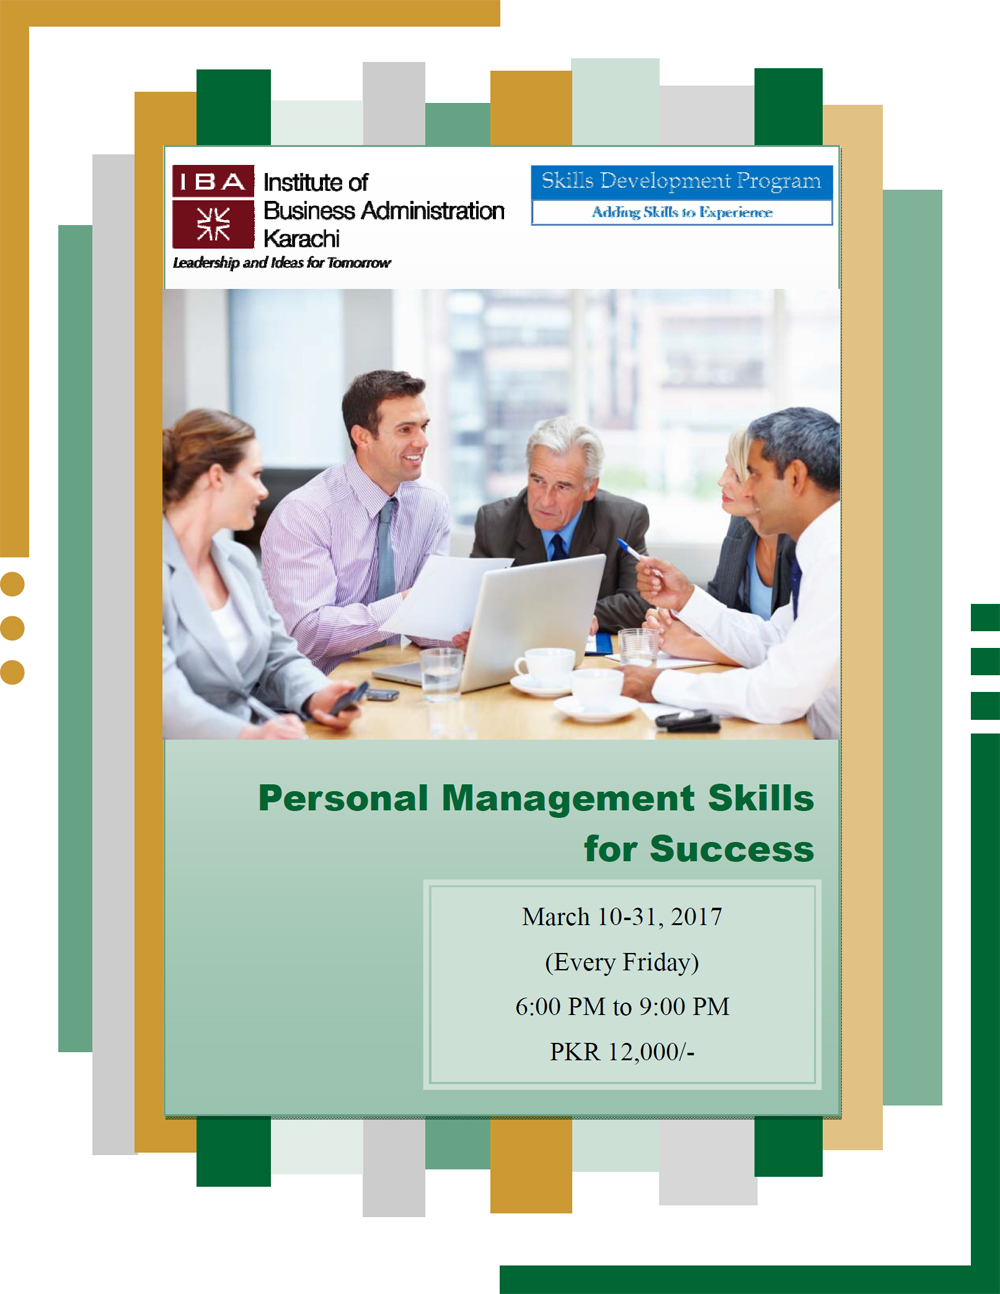 Personal Management Skills for Success